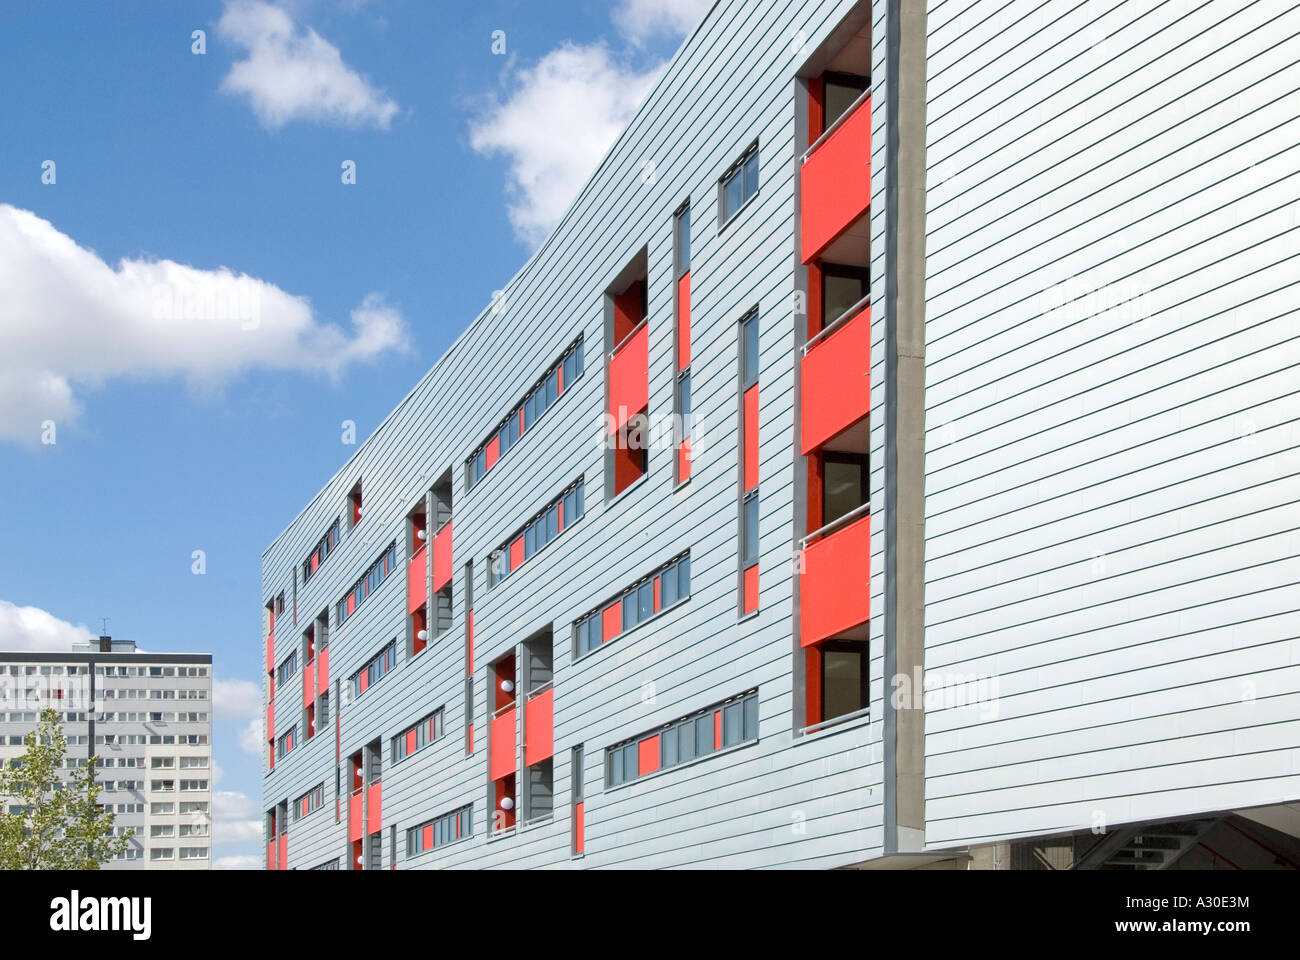 North London development of modern apartment block with traditional high rise block beyond - Stock Image